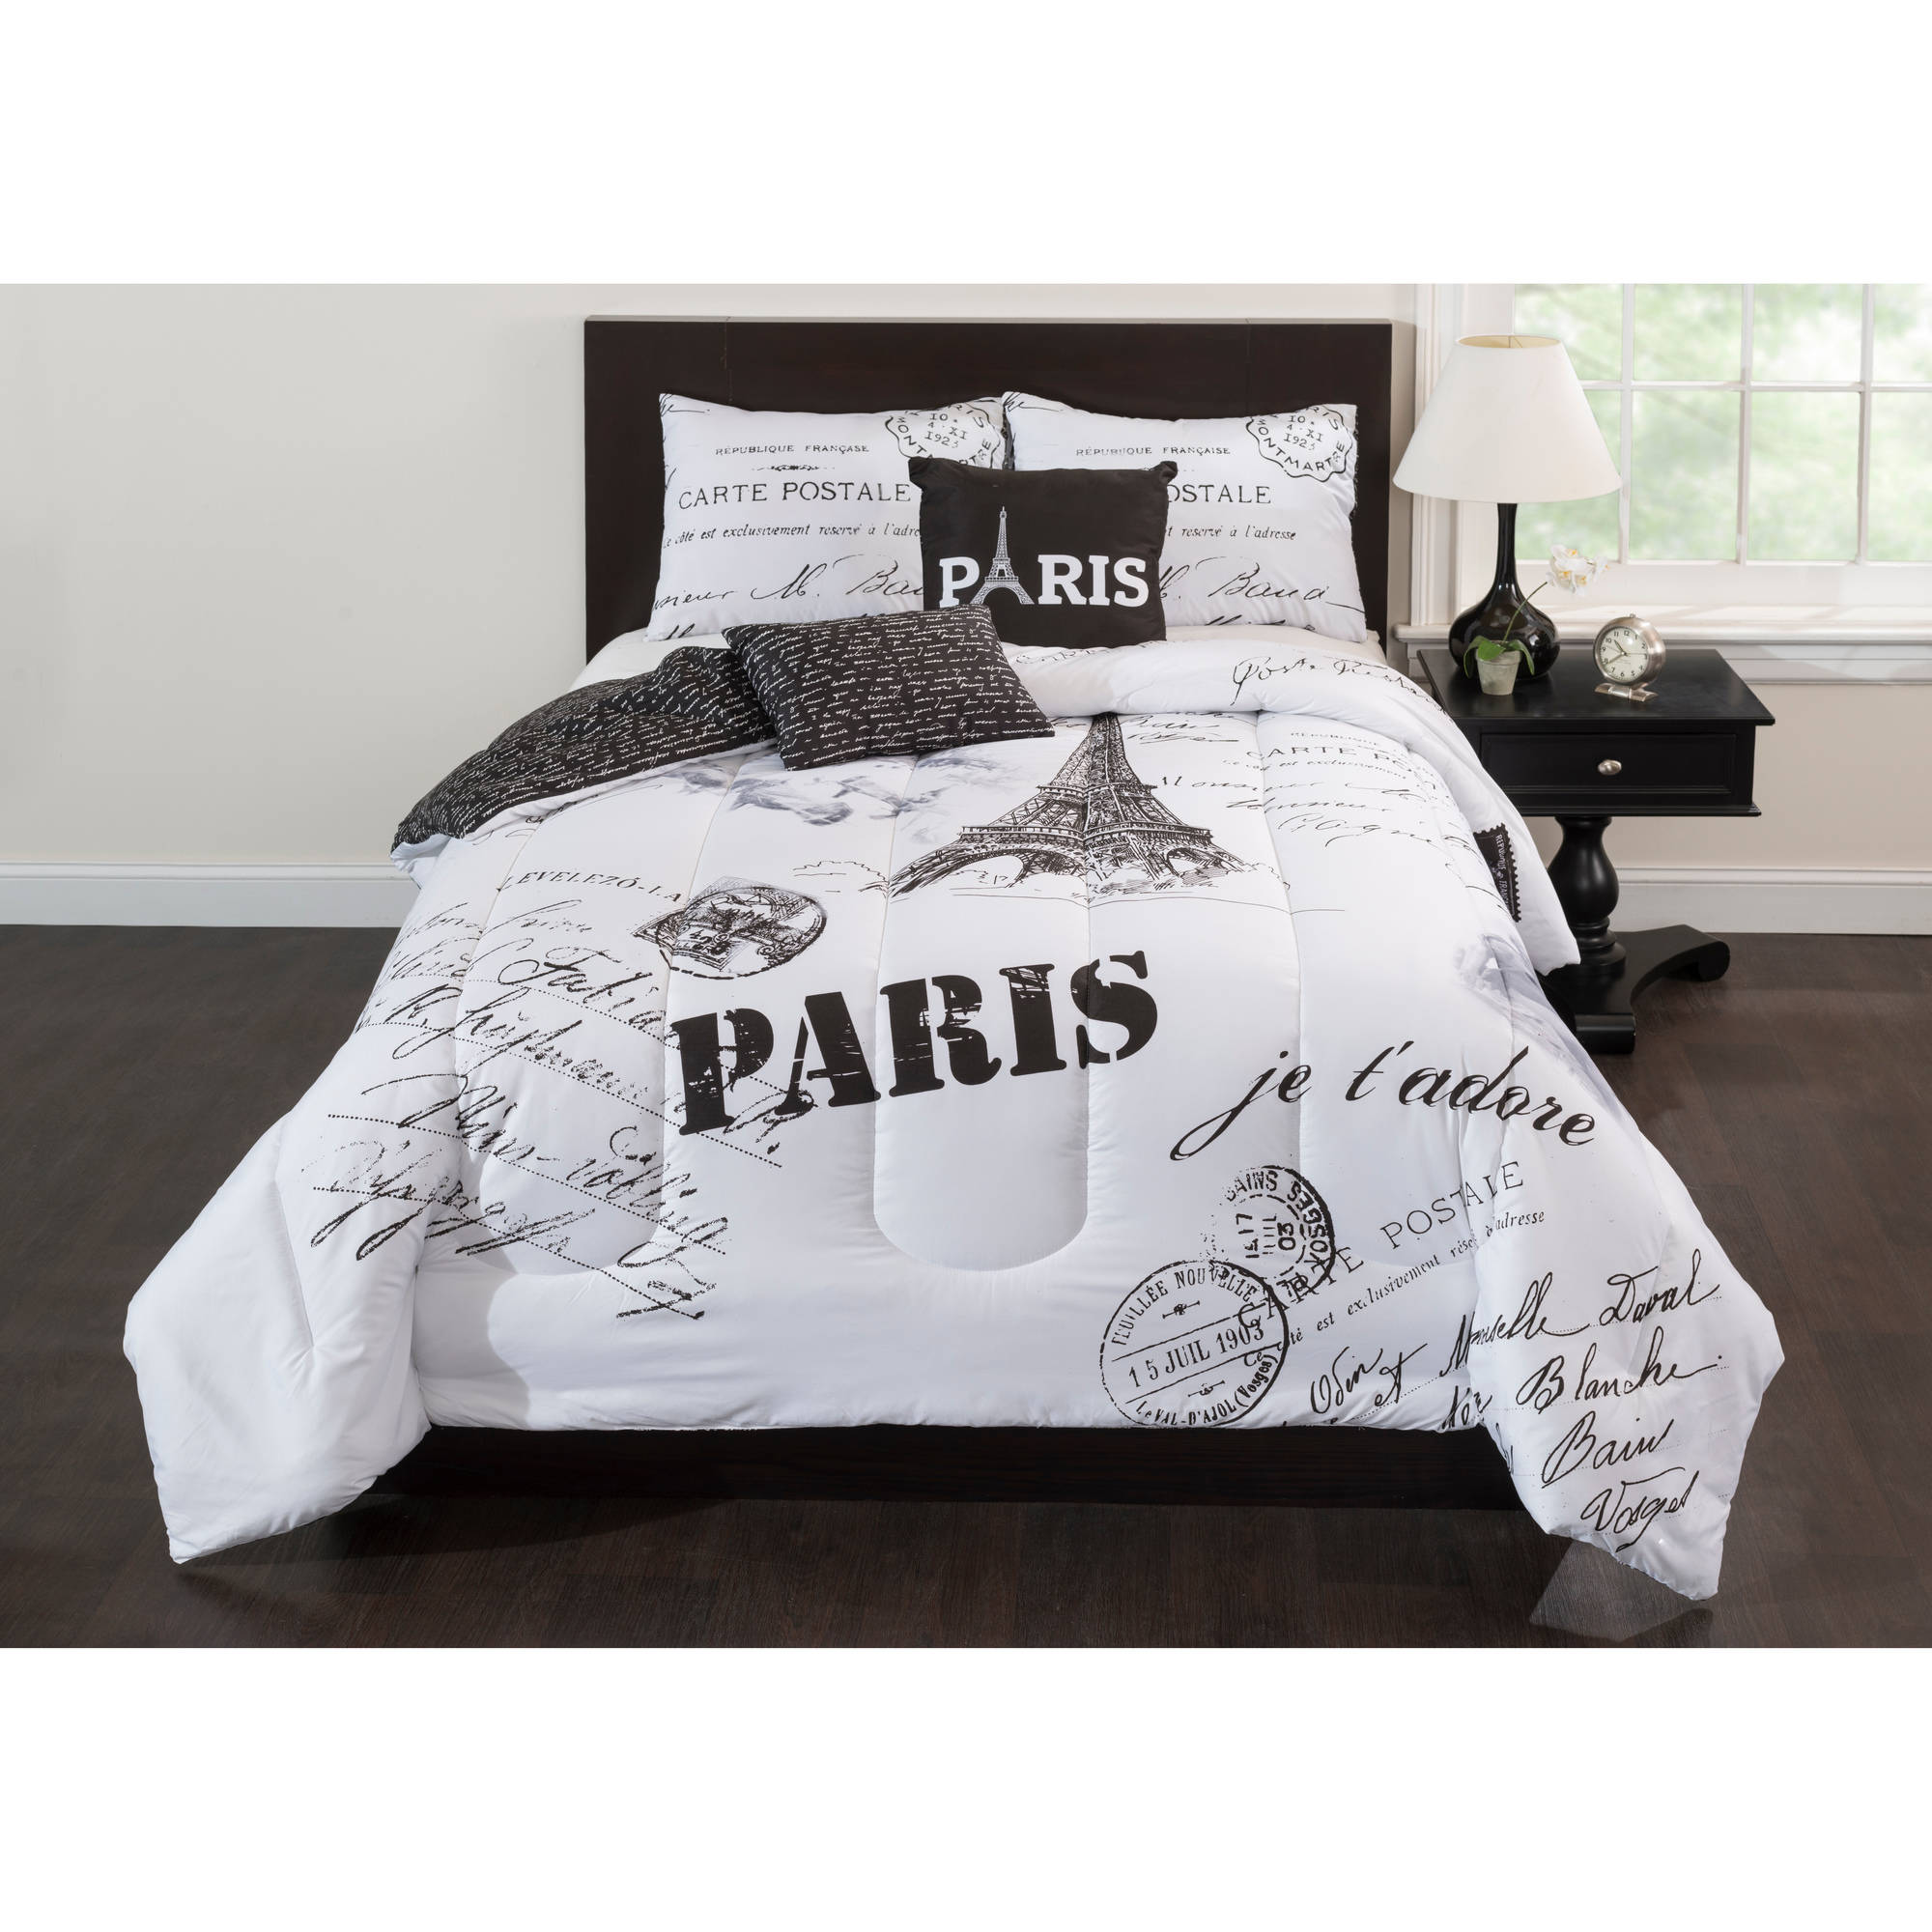 Casa Paris J'Adore 5-Piece Bedding Comforter Set